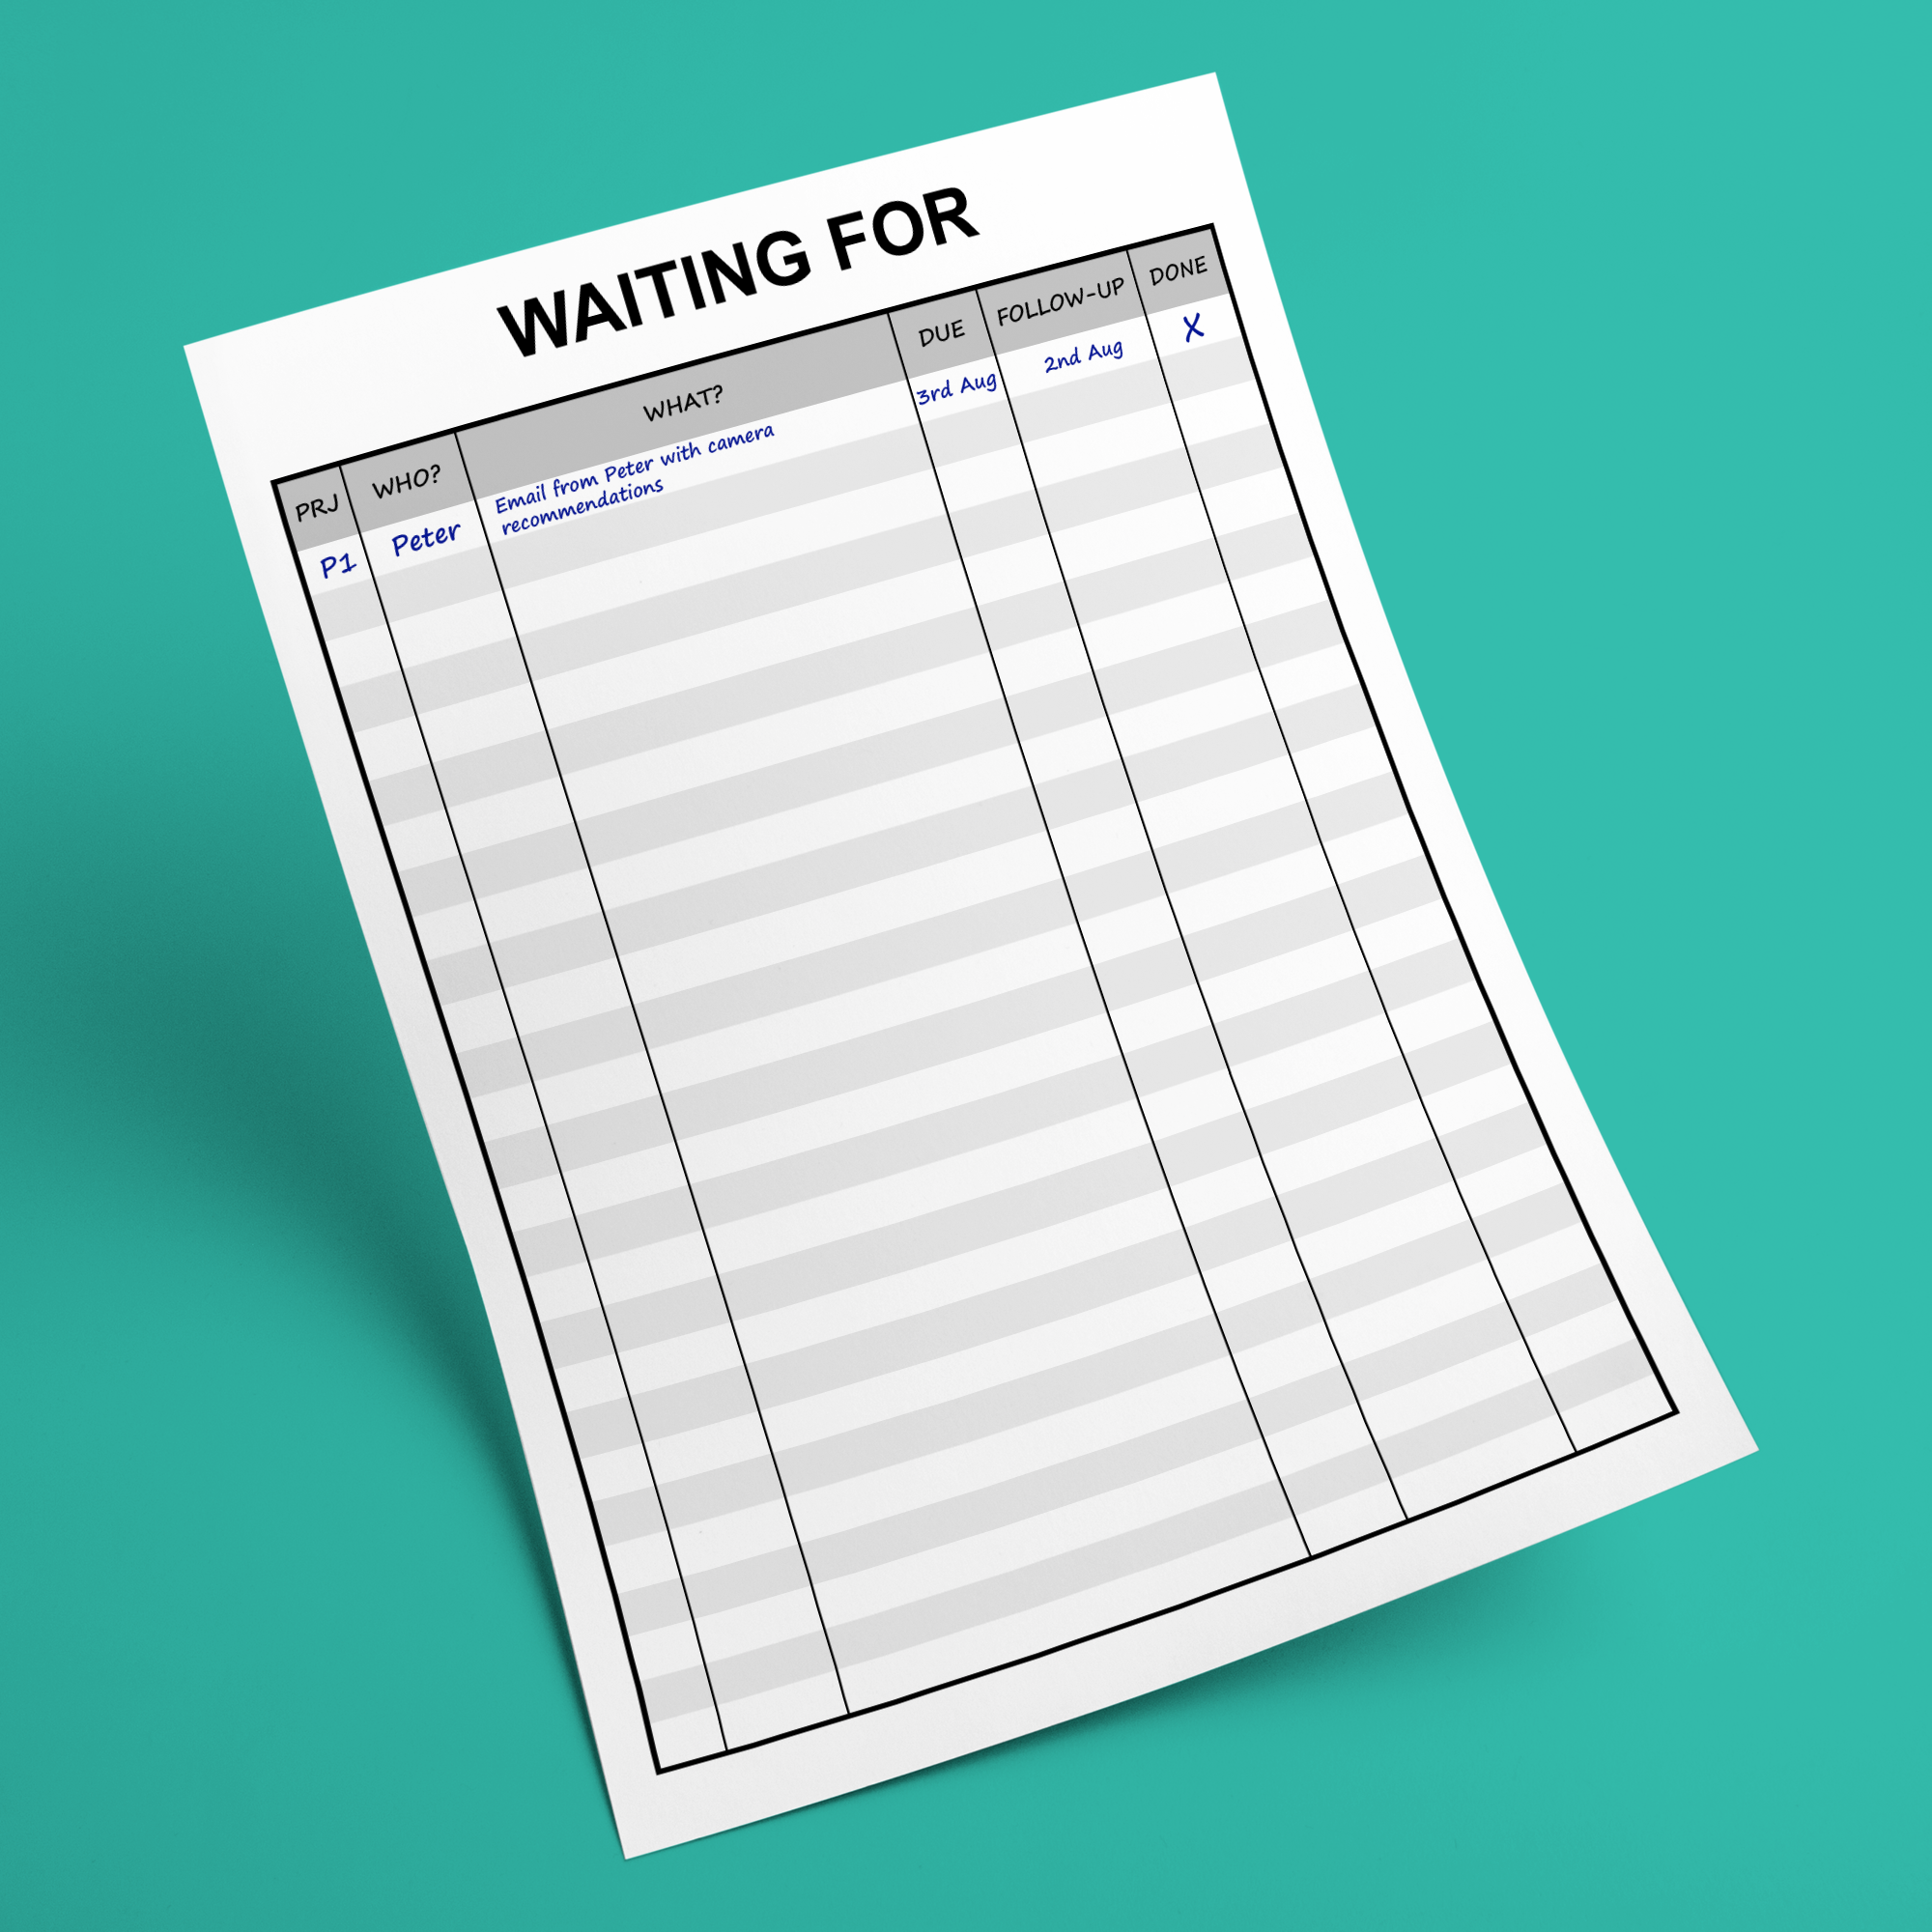 Waiting For Editable Printable Getting Things Done Gtd Etsy Getting Things Done Gtd Productivity Printables